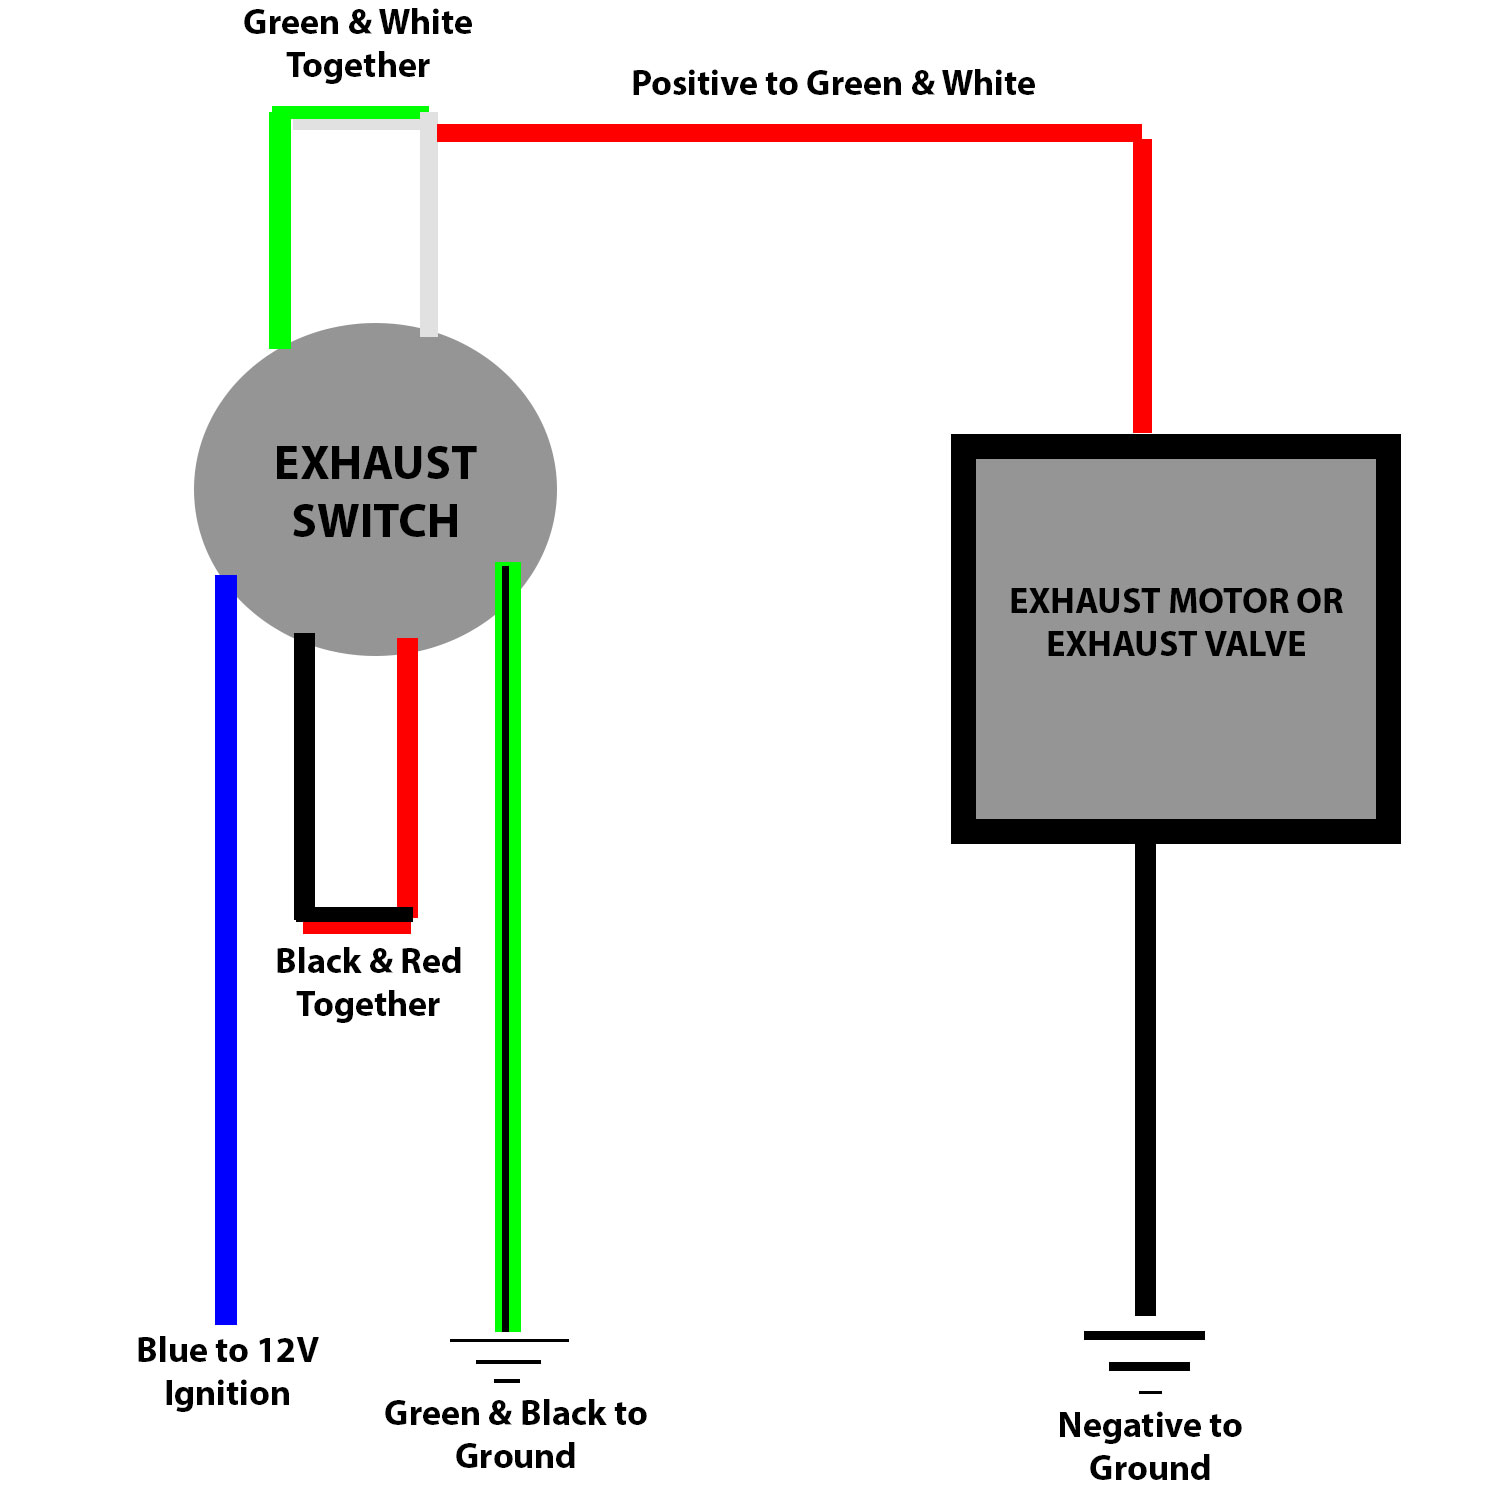 exhaust switch 2 exhaust valve push button switch (switch only) electric exhaust cutout wiring diagram at virtualis.co